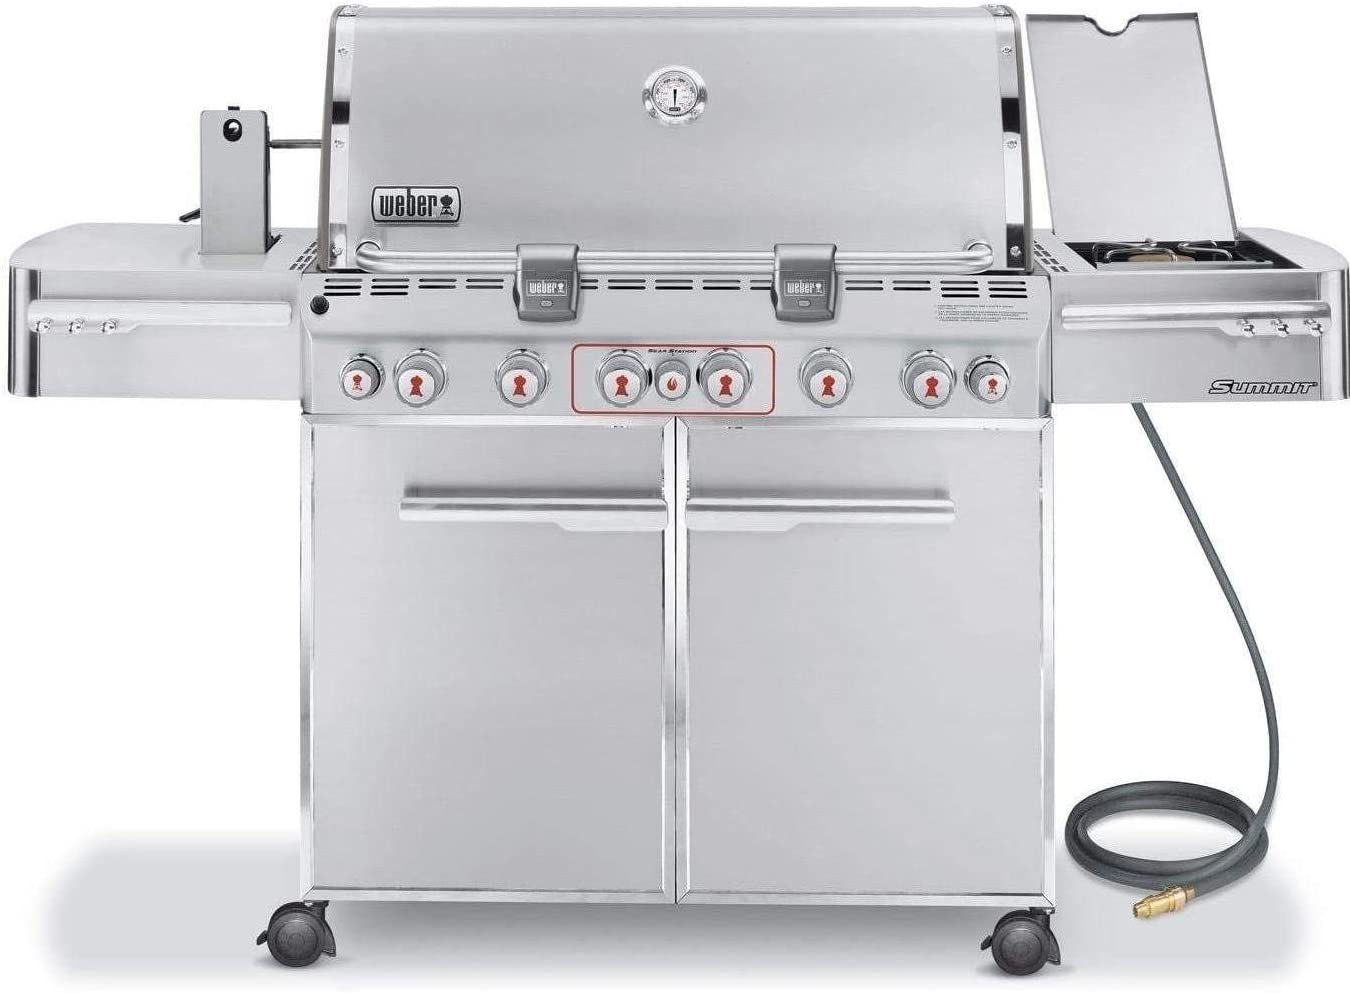 weber-7470001-summit-s-670-6-burner-natural-gas-grill